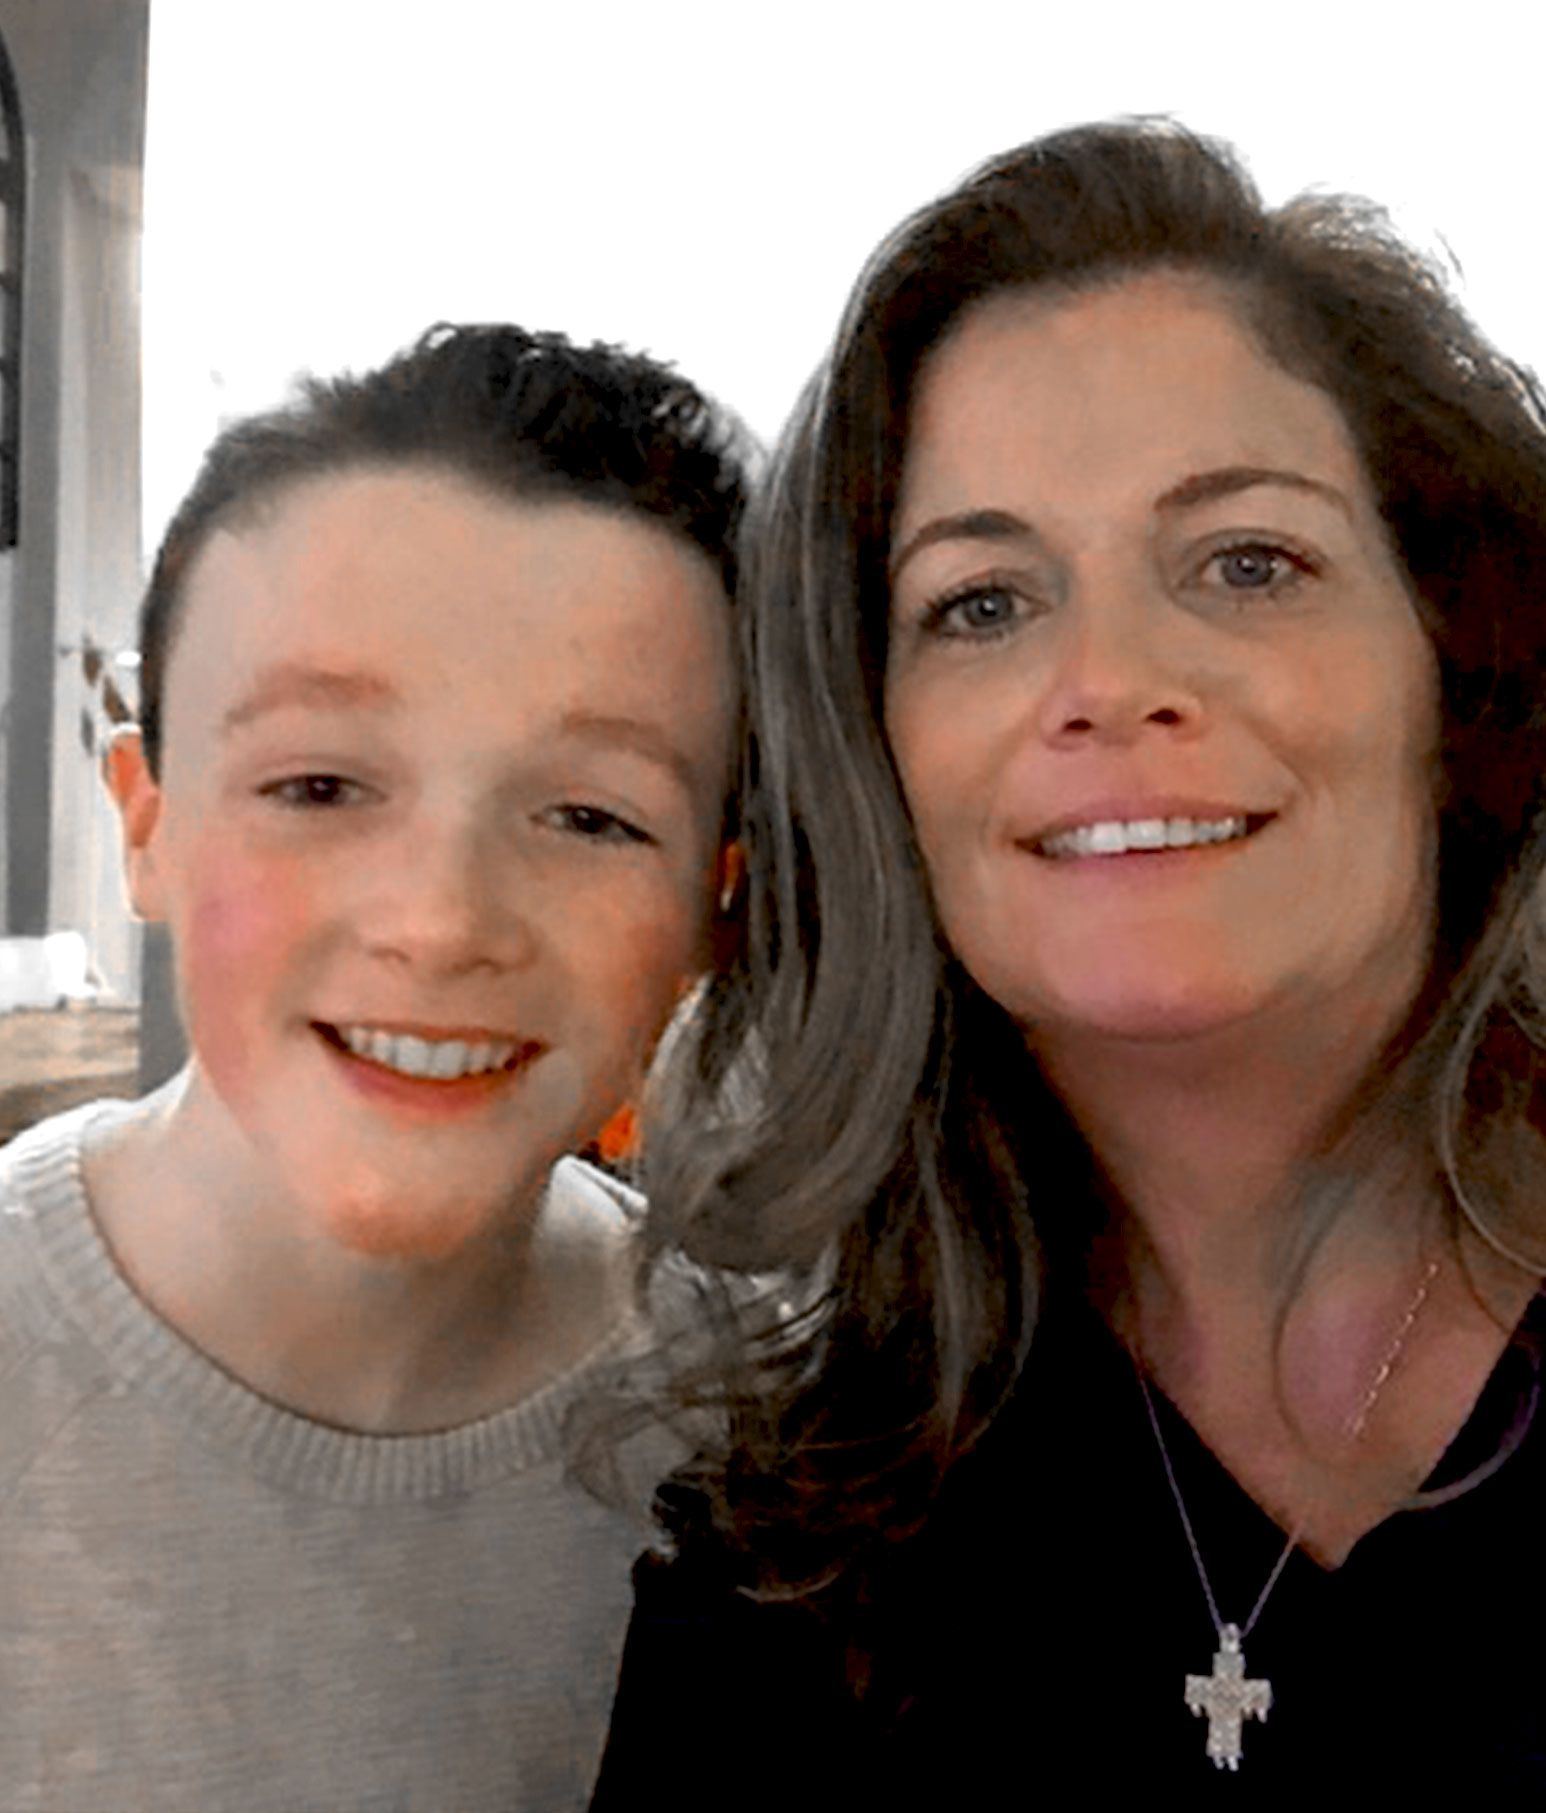 A woman in a black sweater and crucifix necklace takes a selfie with a young teen with a gray sweater and bright smile on.